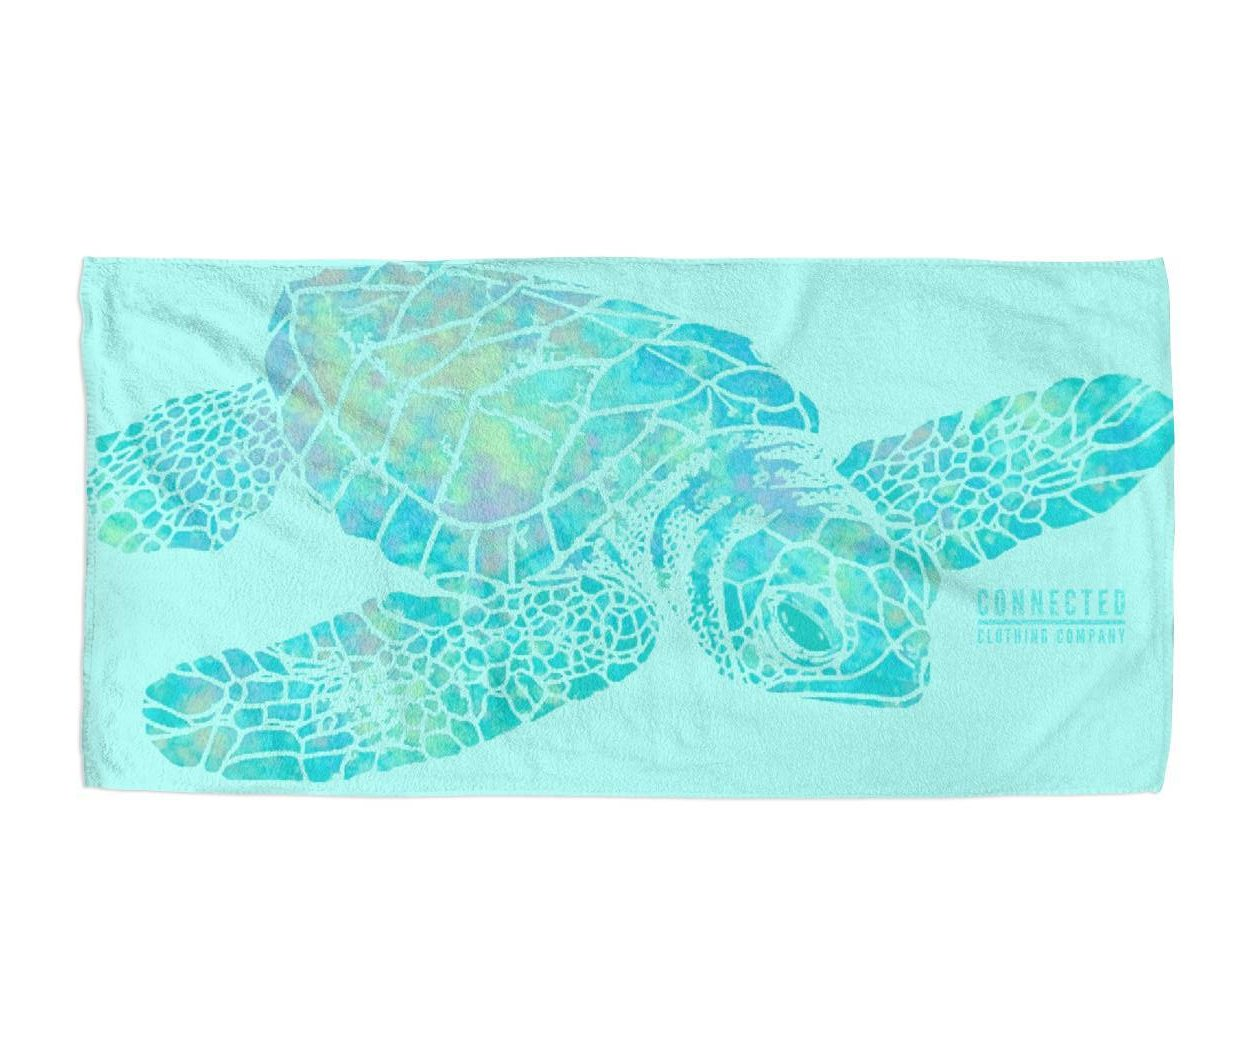 Colorful Sea Turtle Beach Towel - Connected Clothing Company